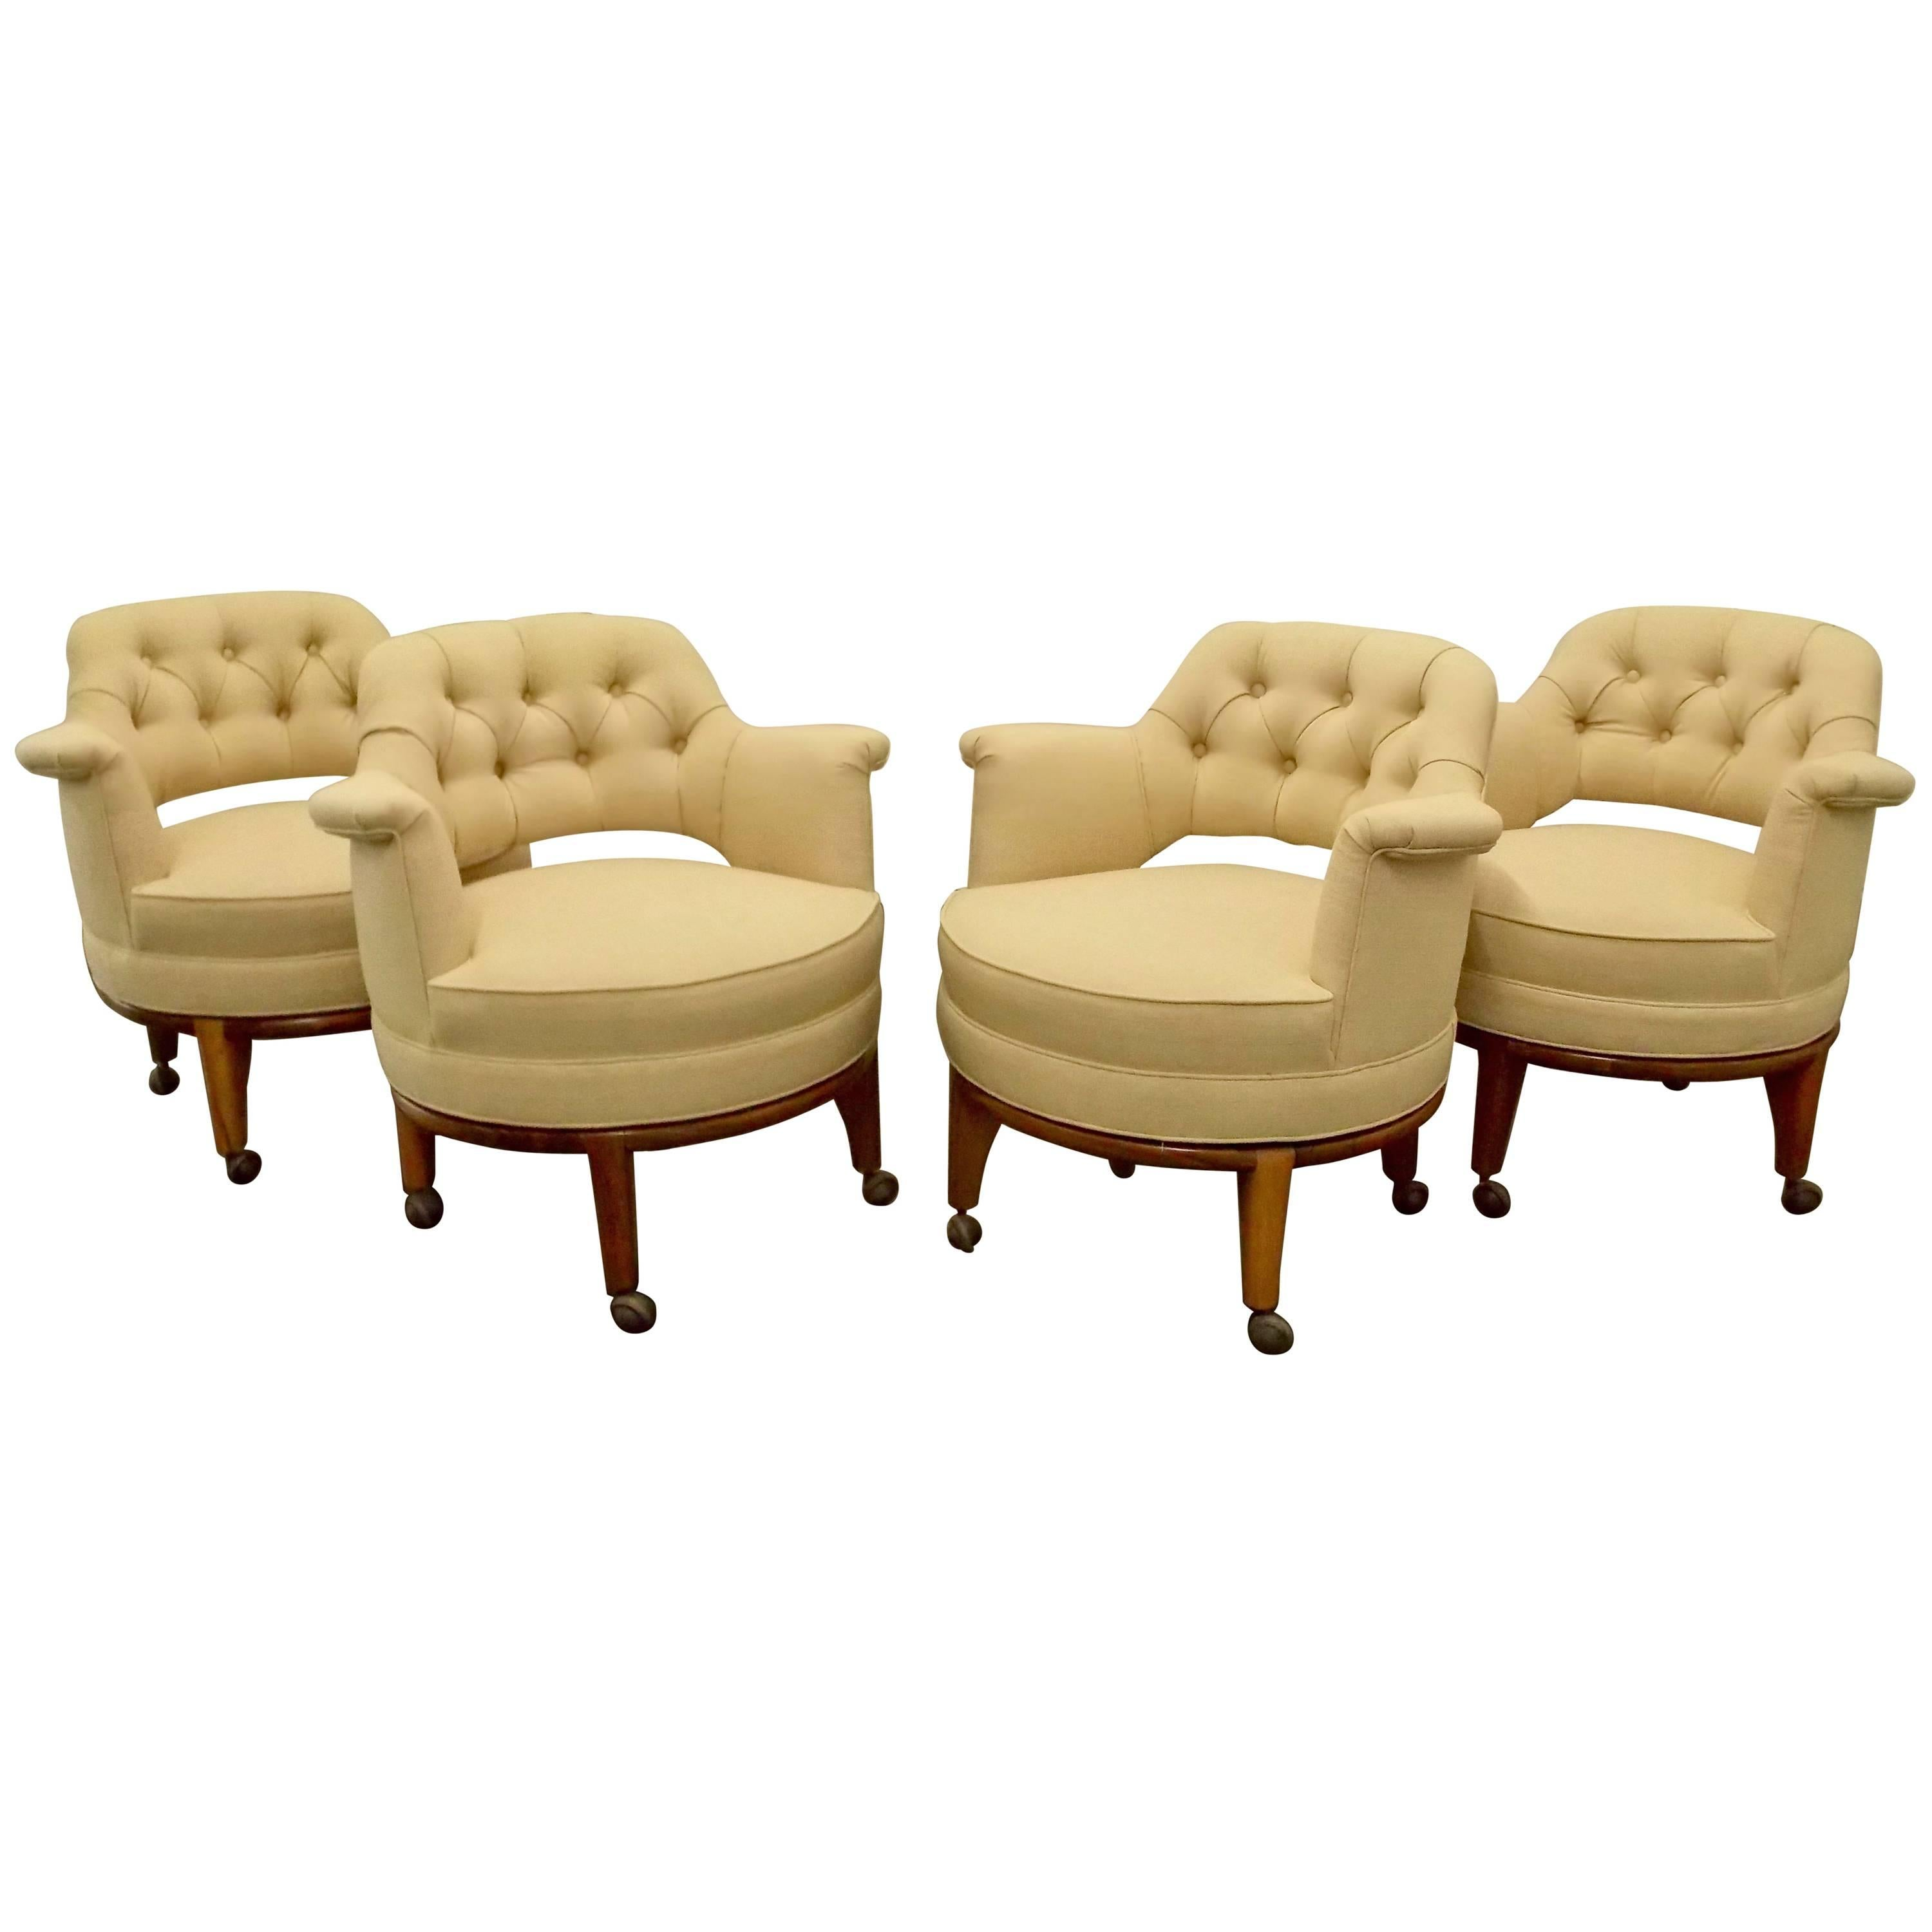 Superior Four Maurice Bailey Chairs For Monteverdi Young, 1960s